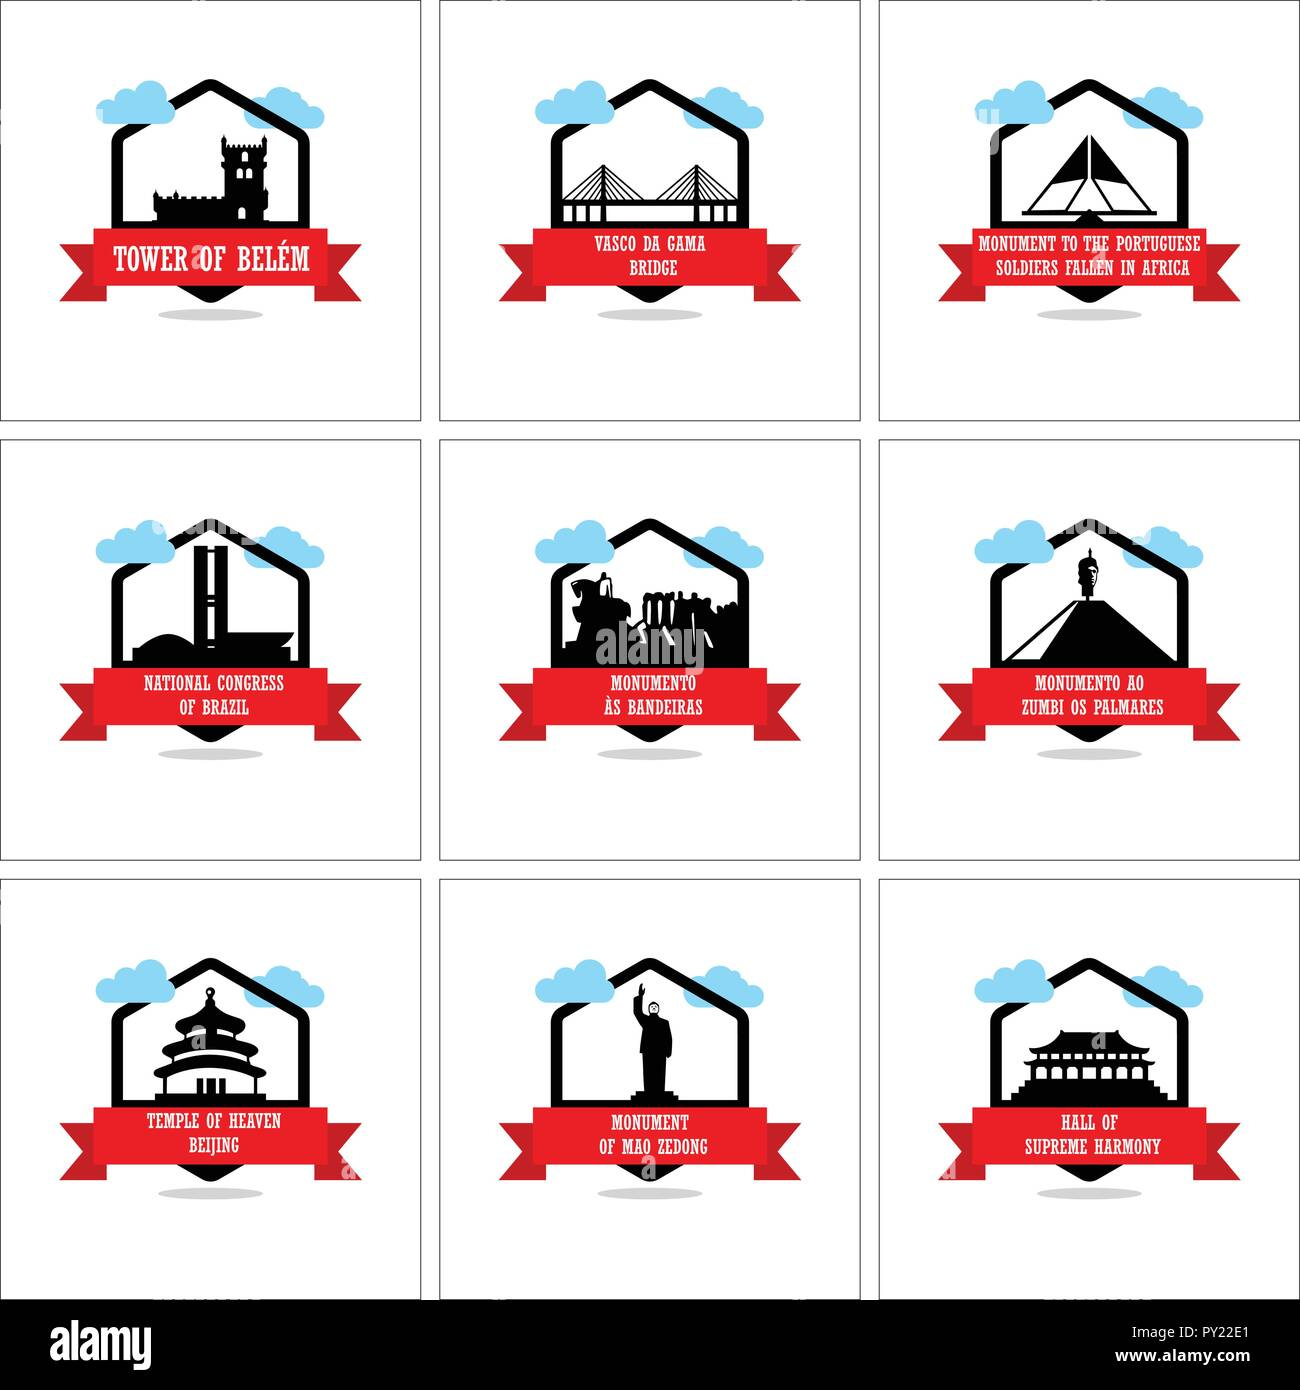 a9aebc26a9c Worlds Famous monuments and landmarks icons set vector - Stock Image